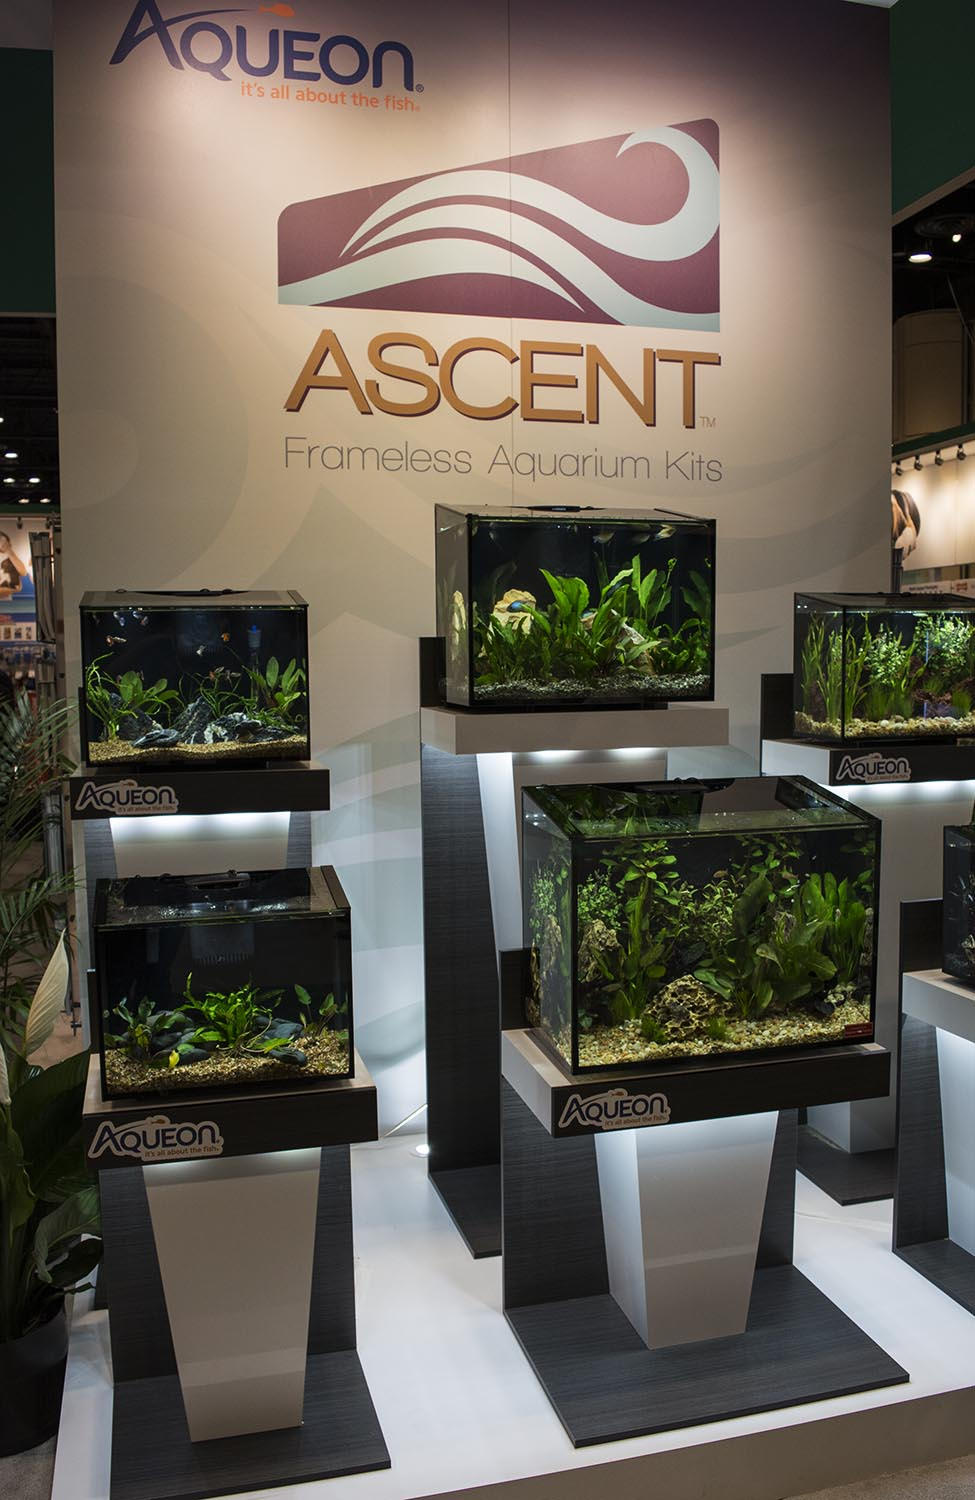 Aquarium product manufactuer Aqueon introduced the new 'Ascent' line of sloped-front glass aquariums at the show